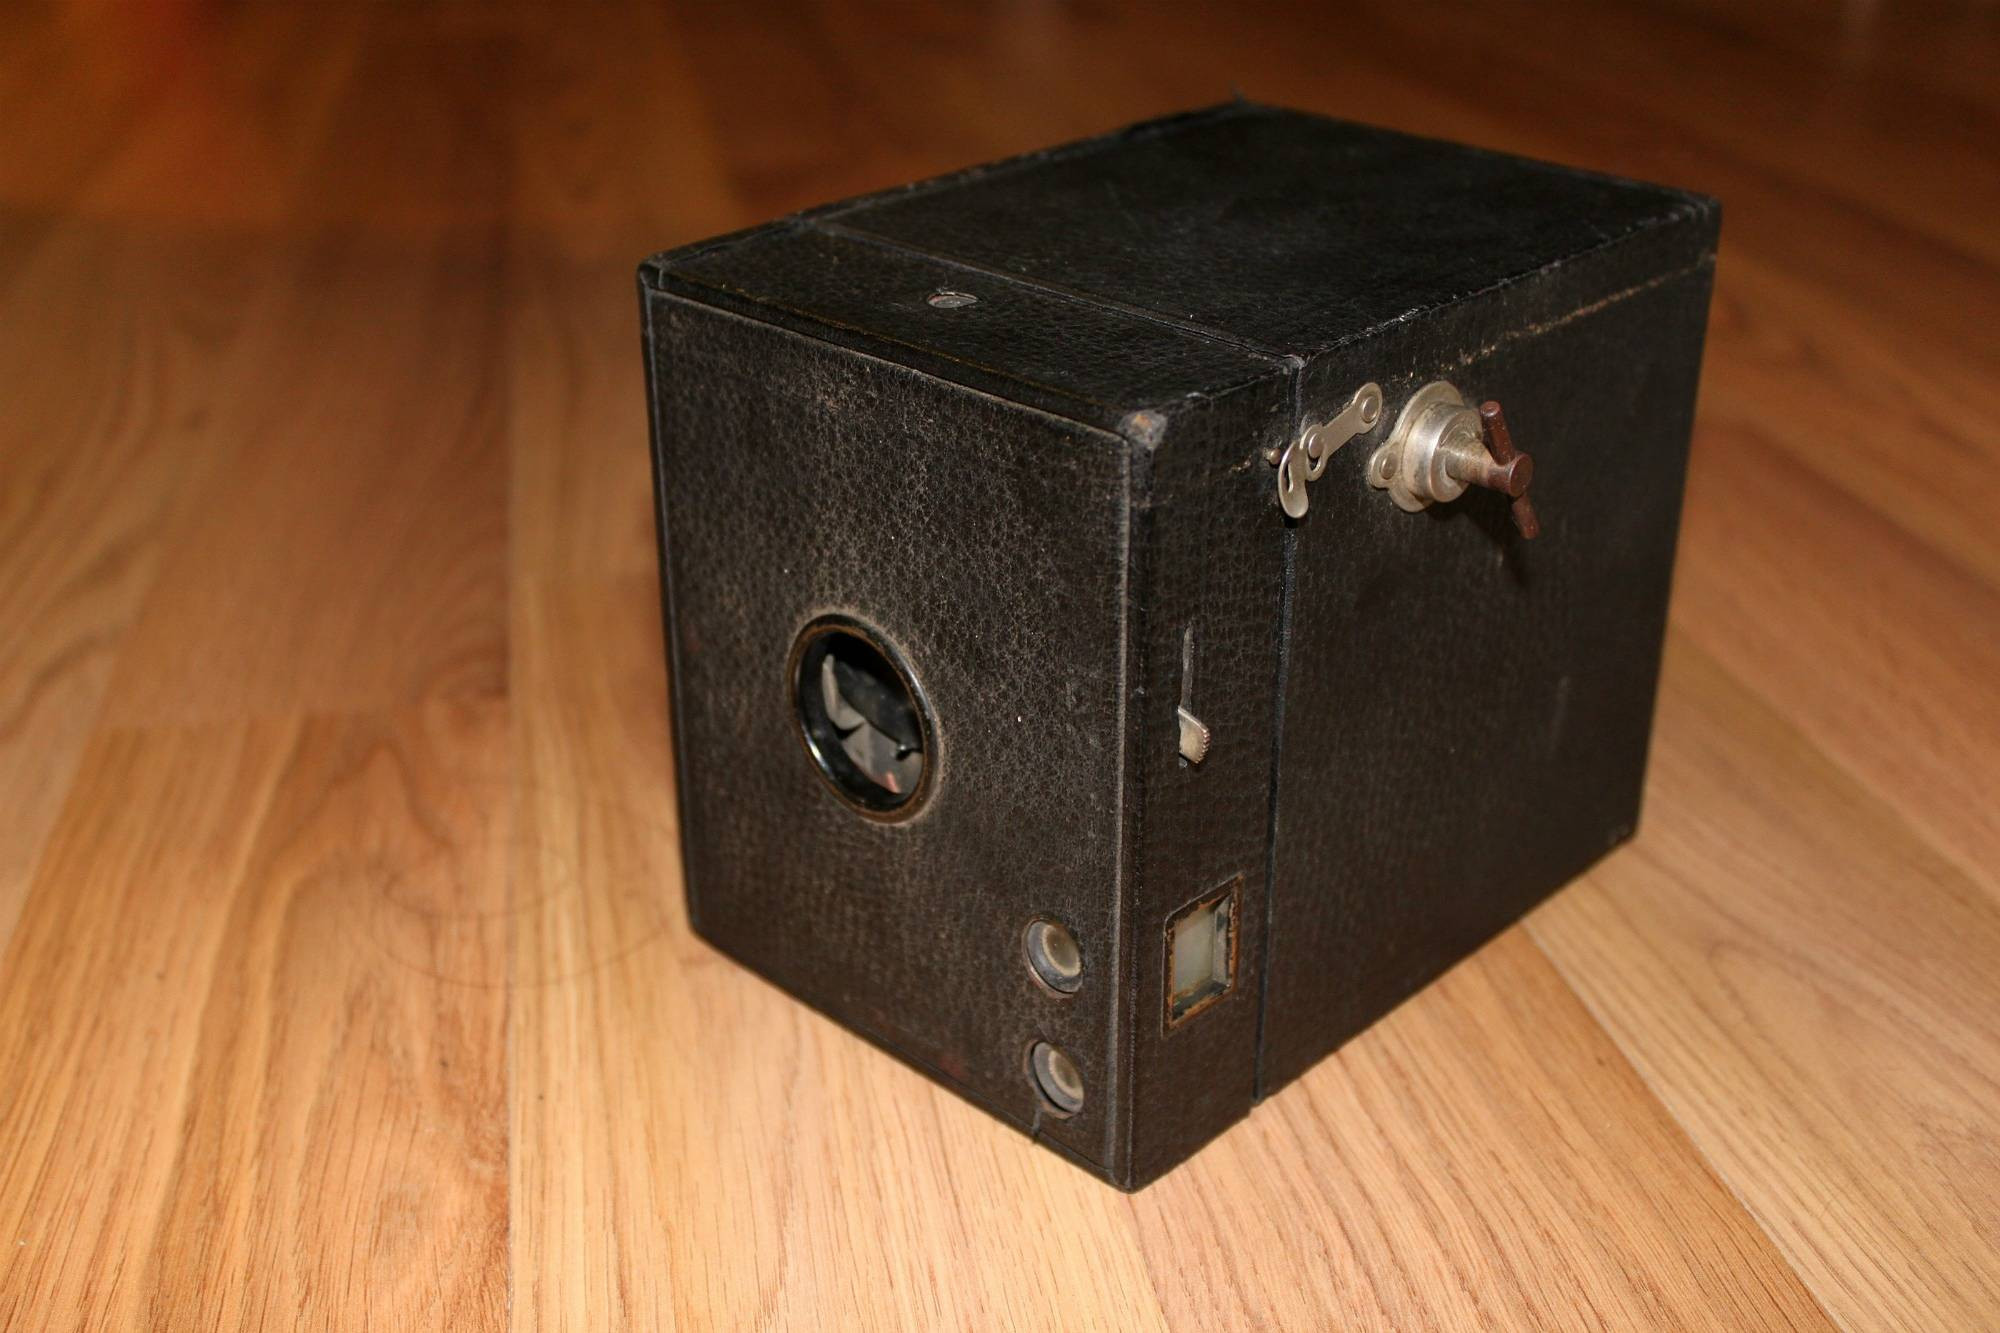 discontinued hardwood flooring for sale of vintage find no 3 brownie camera a· lomography with from underneath piles of papers folders dust and old photos i dug out this strange looking black box i turned it over a few times before it hit me that